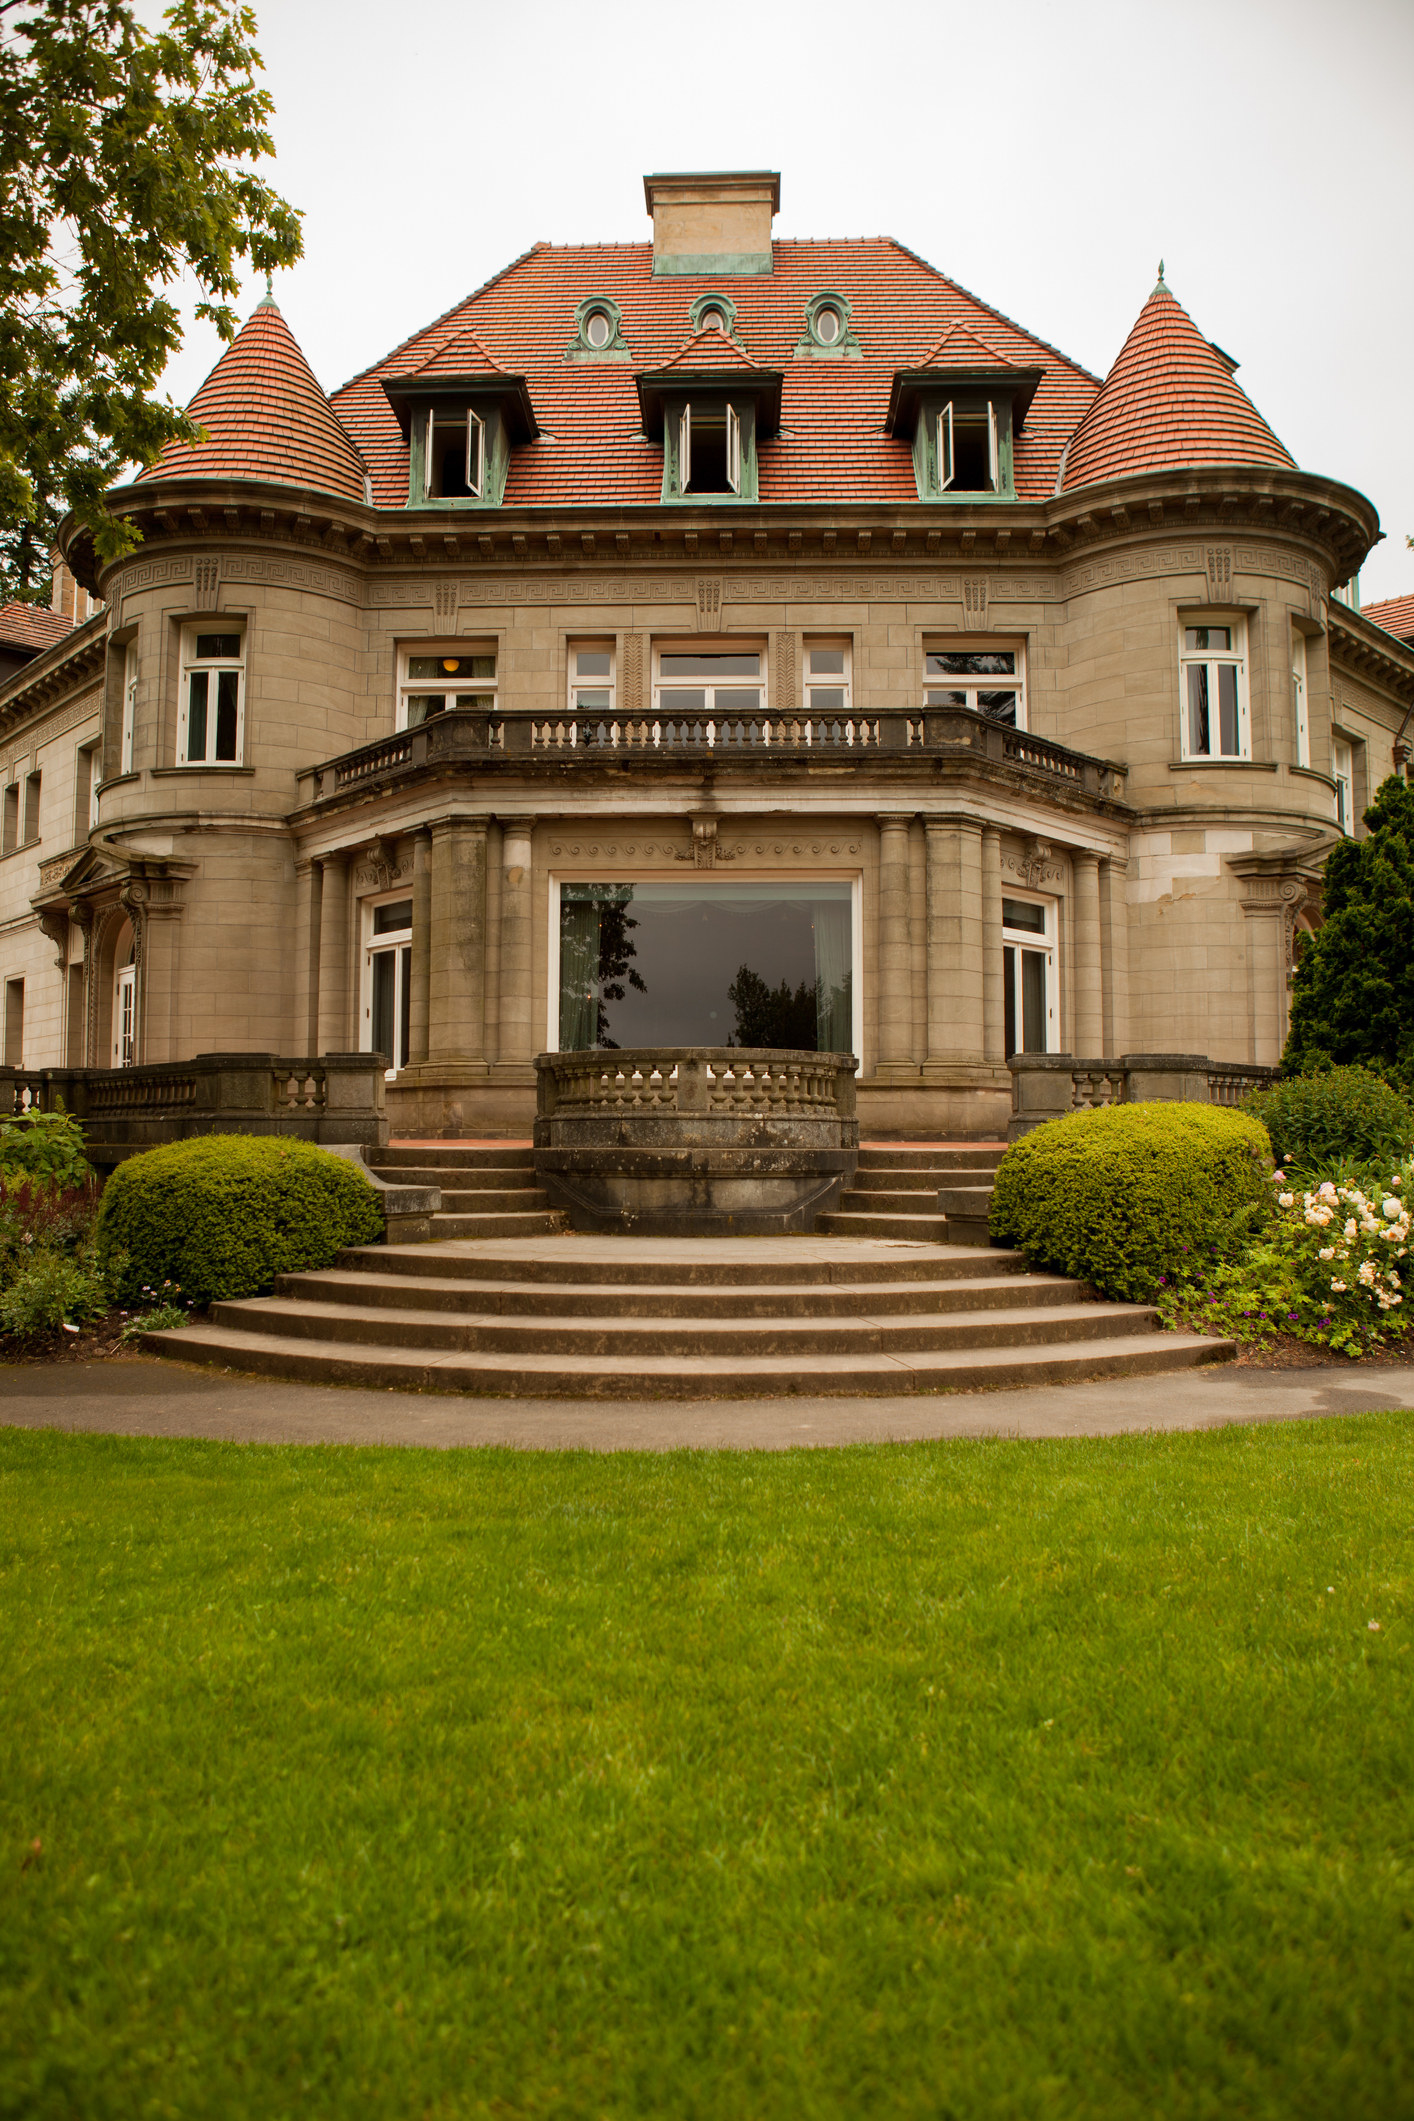 The exterior view of the Pittock Mansion in Portland, Oregon